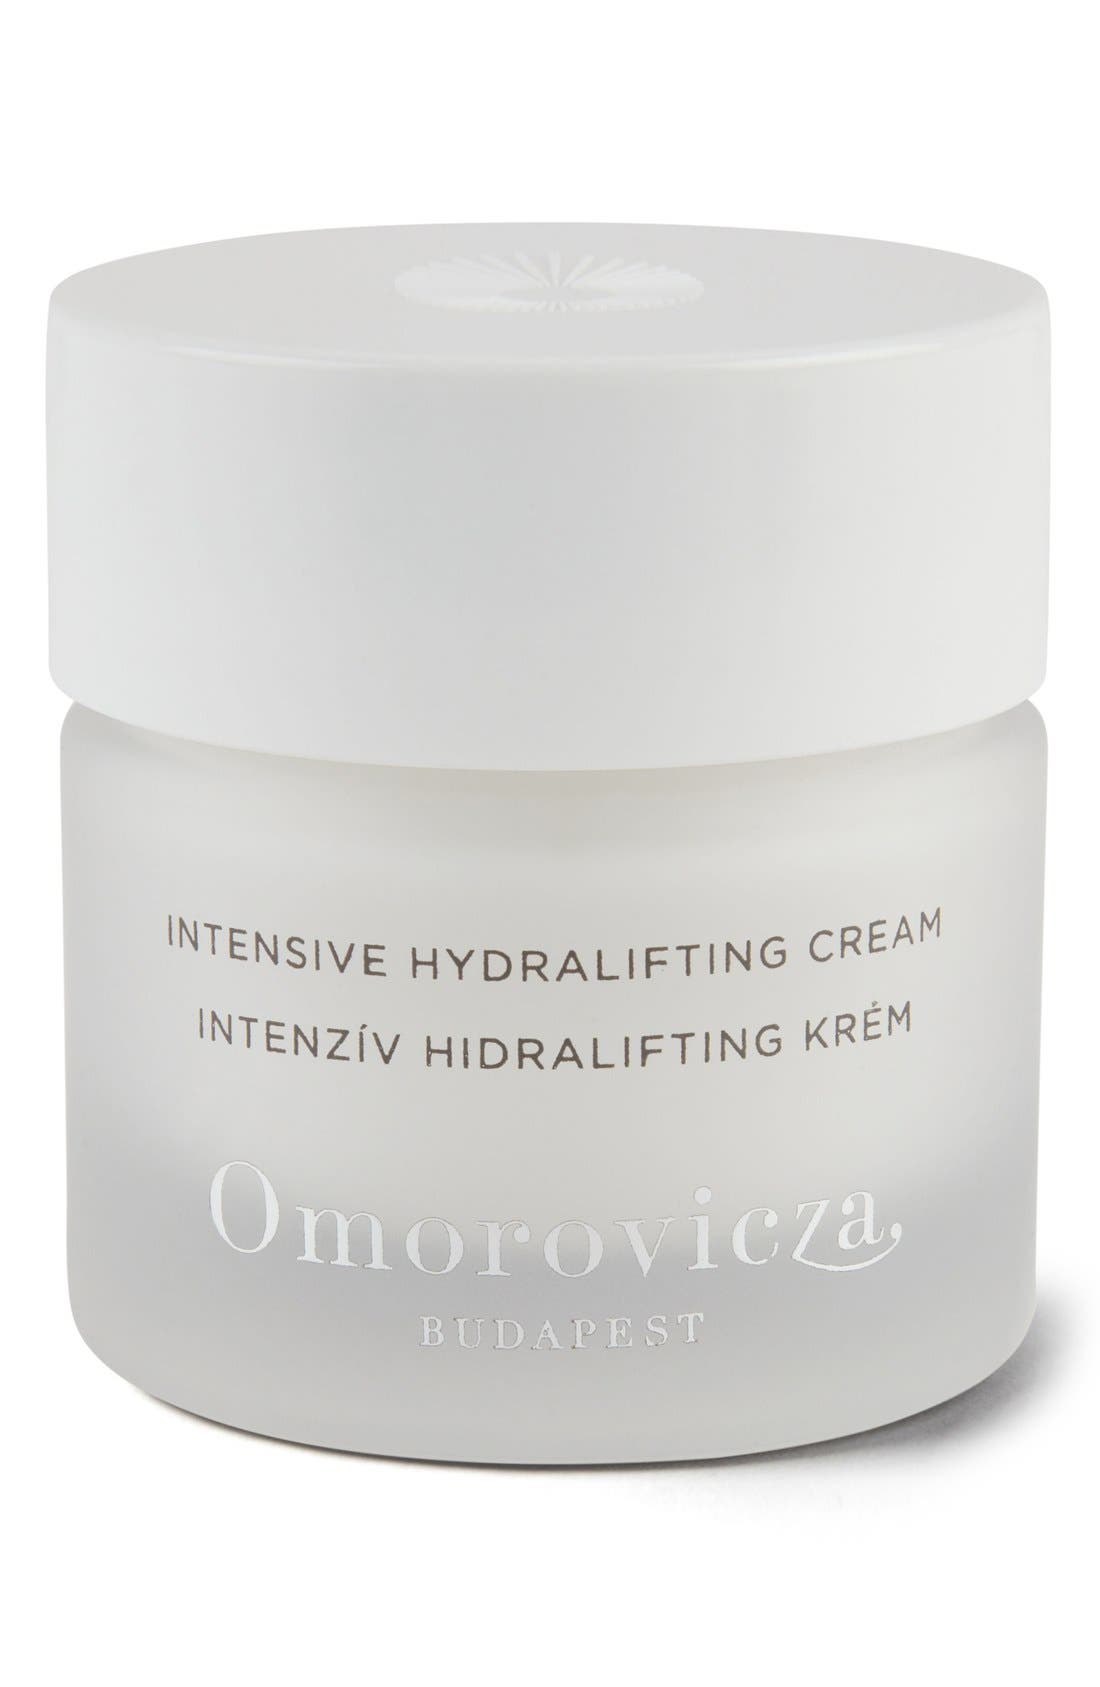 Intensive Hydra-Lifting Cream,                             Main thumbnail 1, color,                             NO COLOR